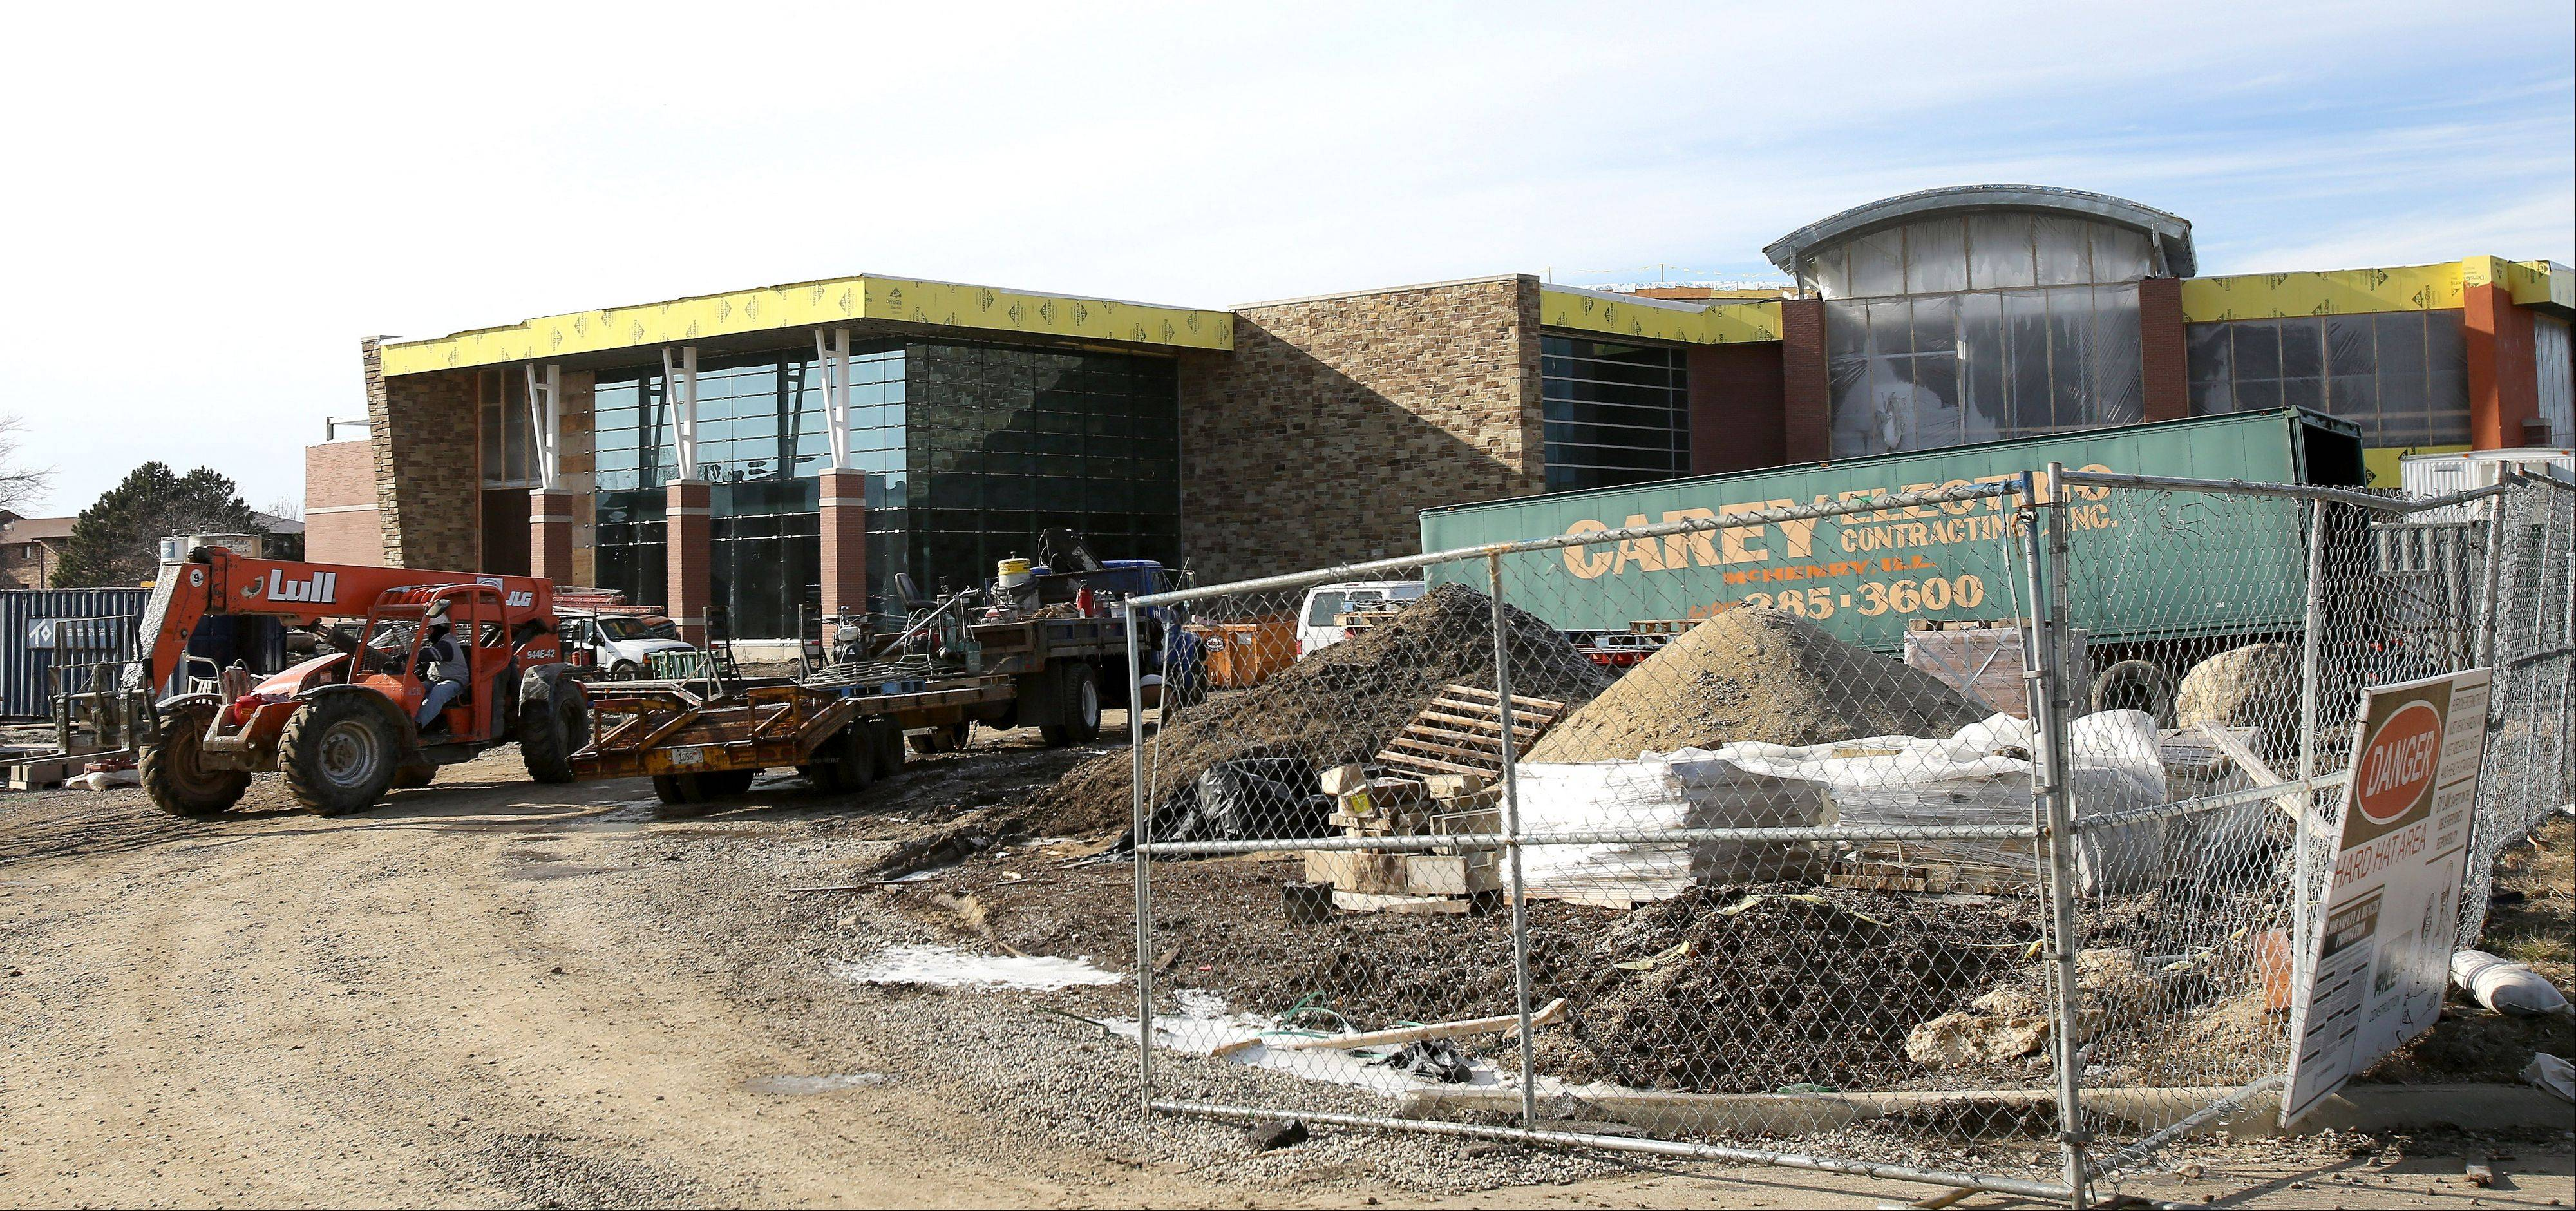 Construction on the two-story, 90,846-square-foot Fountain View Recreation Center in Carol Stream is progressing, with completion expected by June.